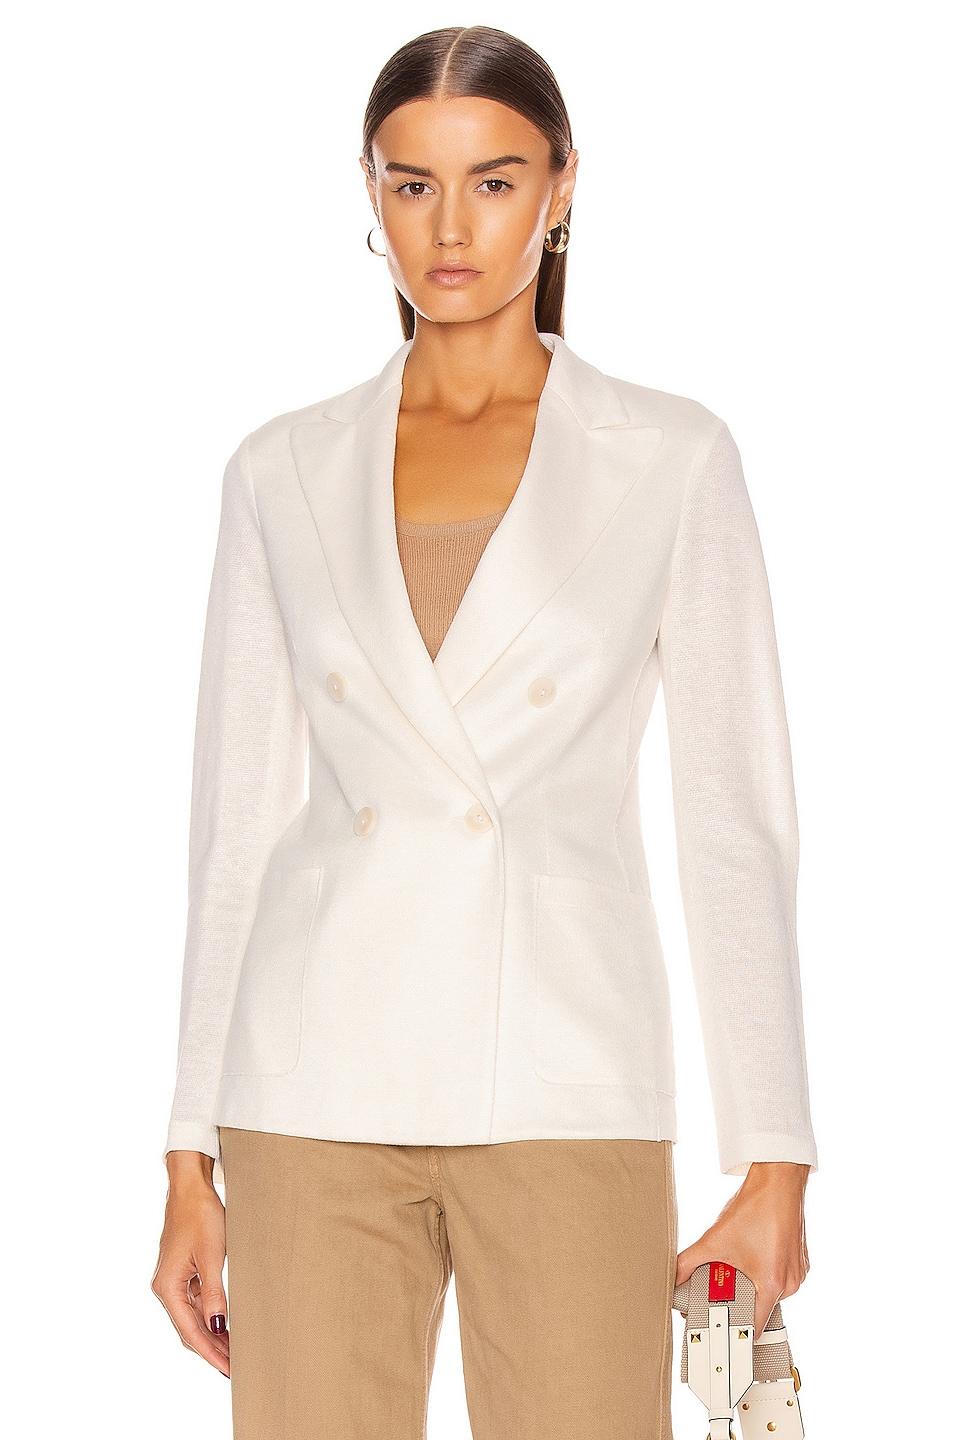 Image 1 of Harris Wharf London Peal Lapel Blazer Jacket in Off White